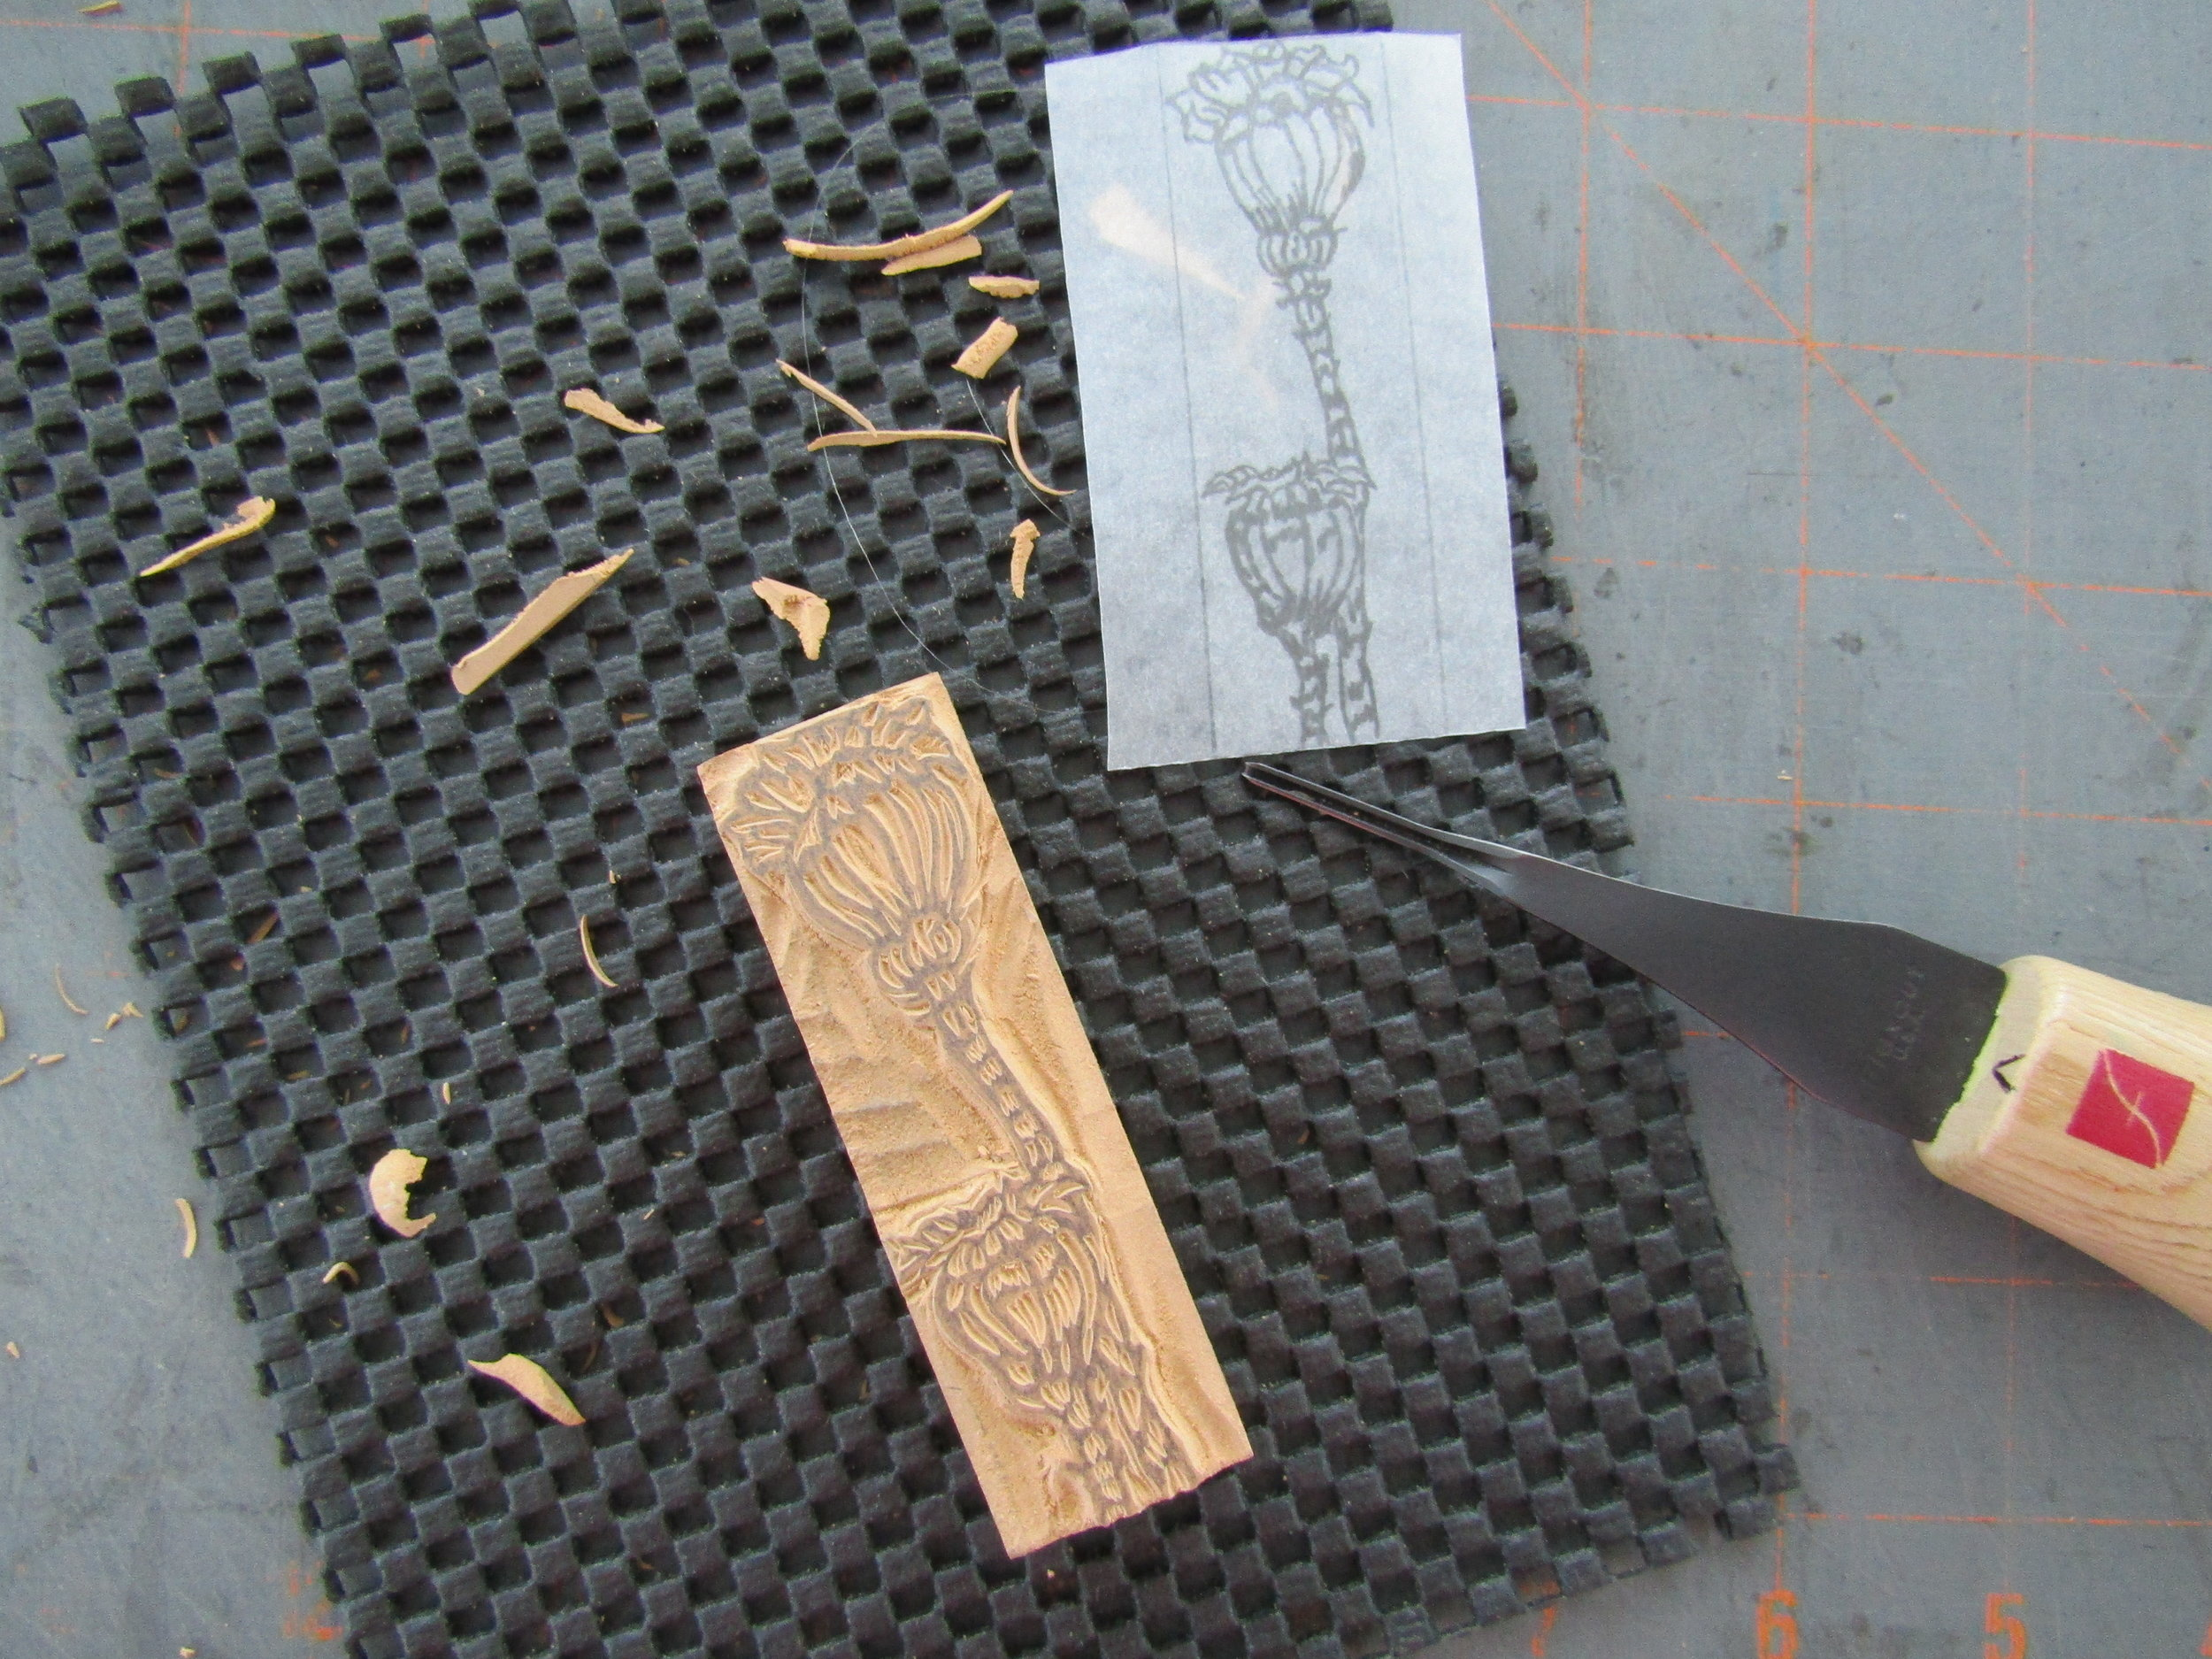 Carving a small block based on the sketch of the poppy pods.